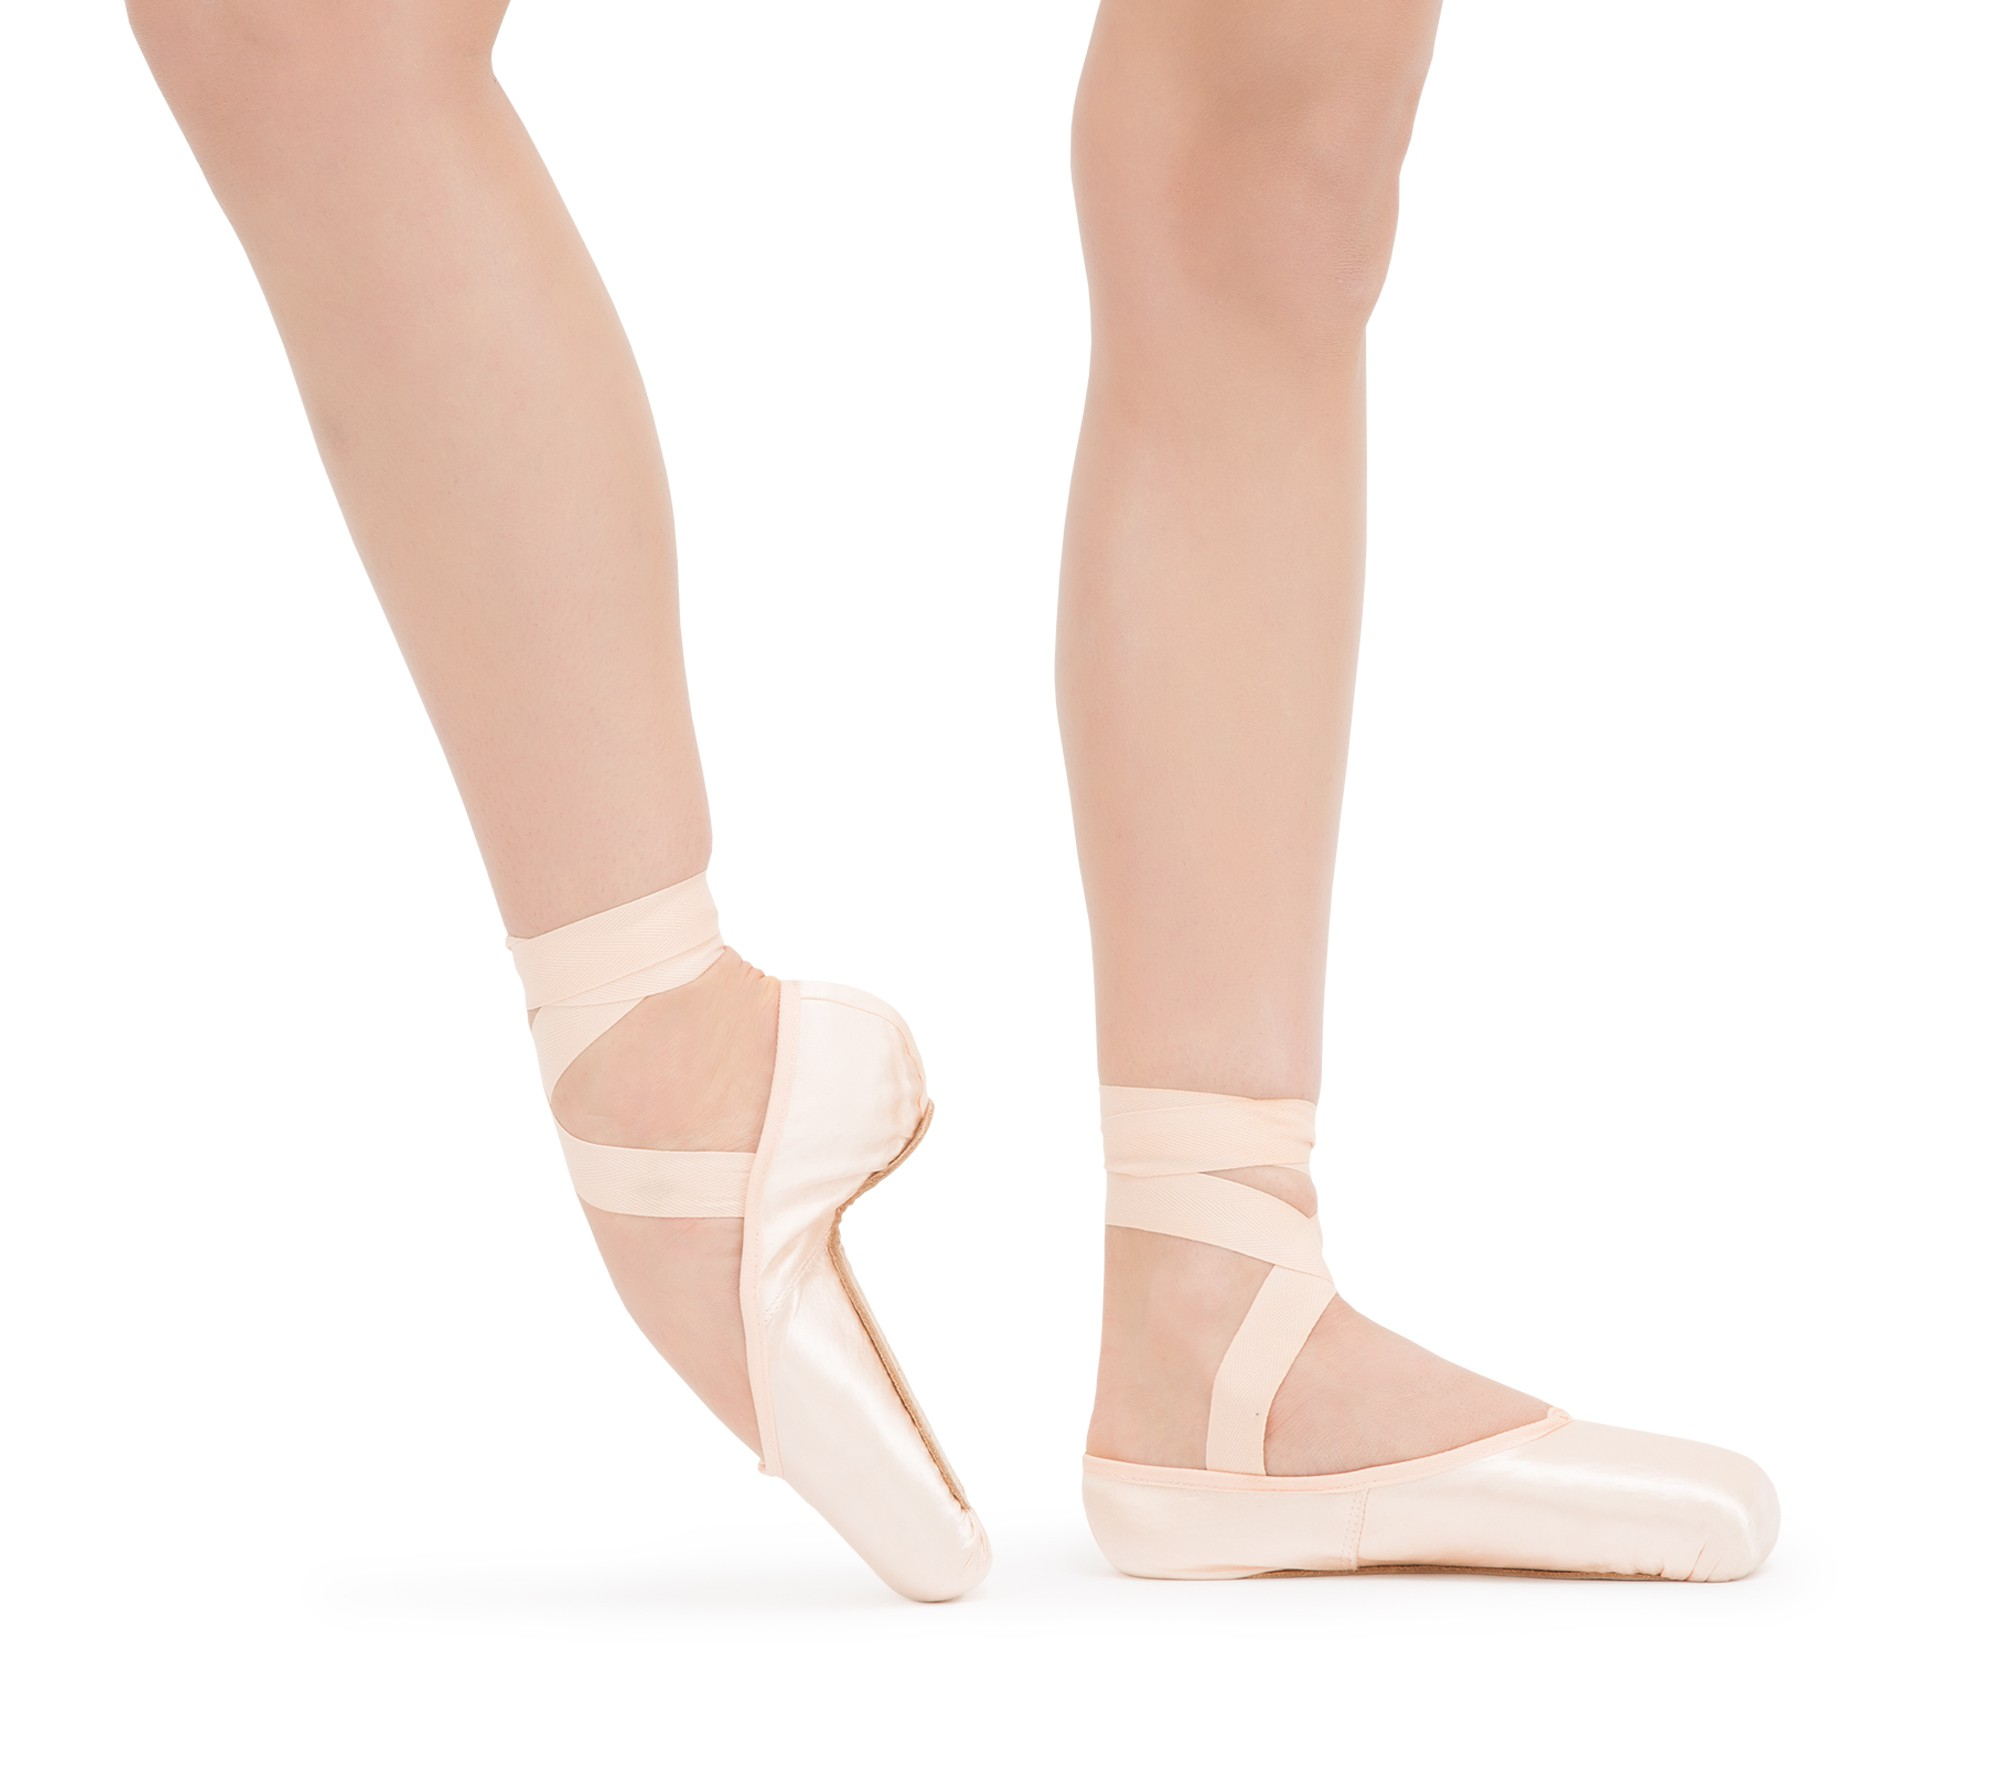 Alicia pointe shoes - Medium box Medium sole